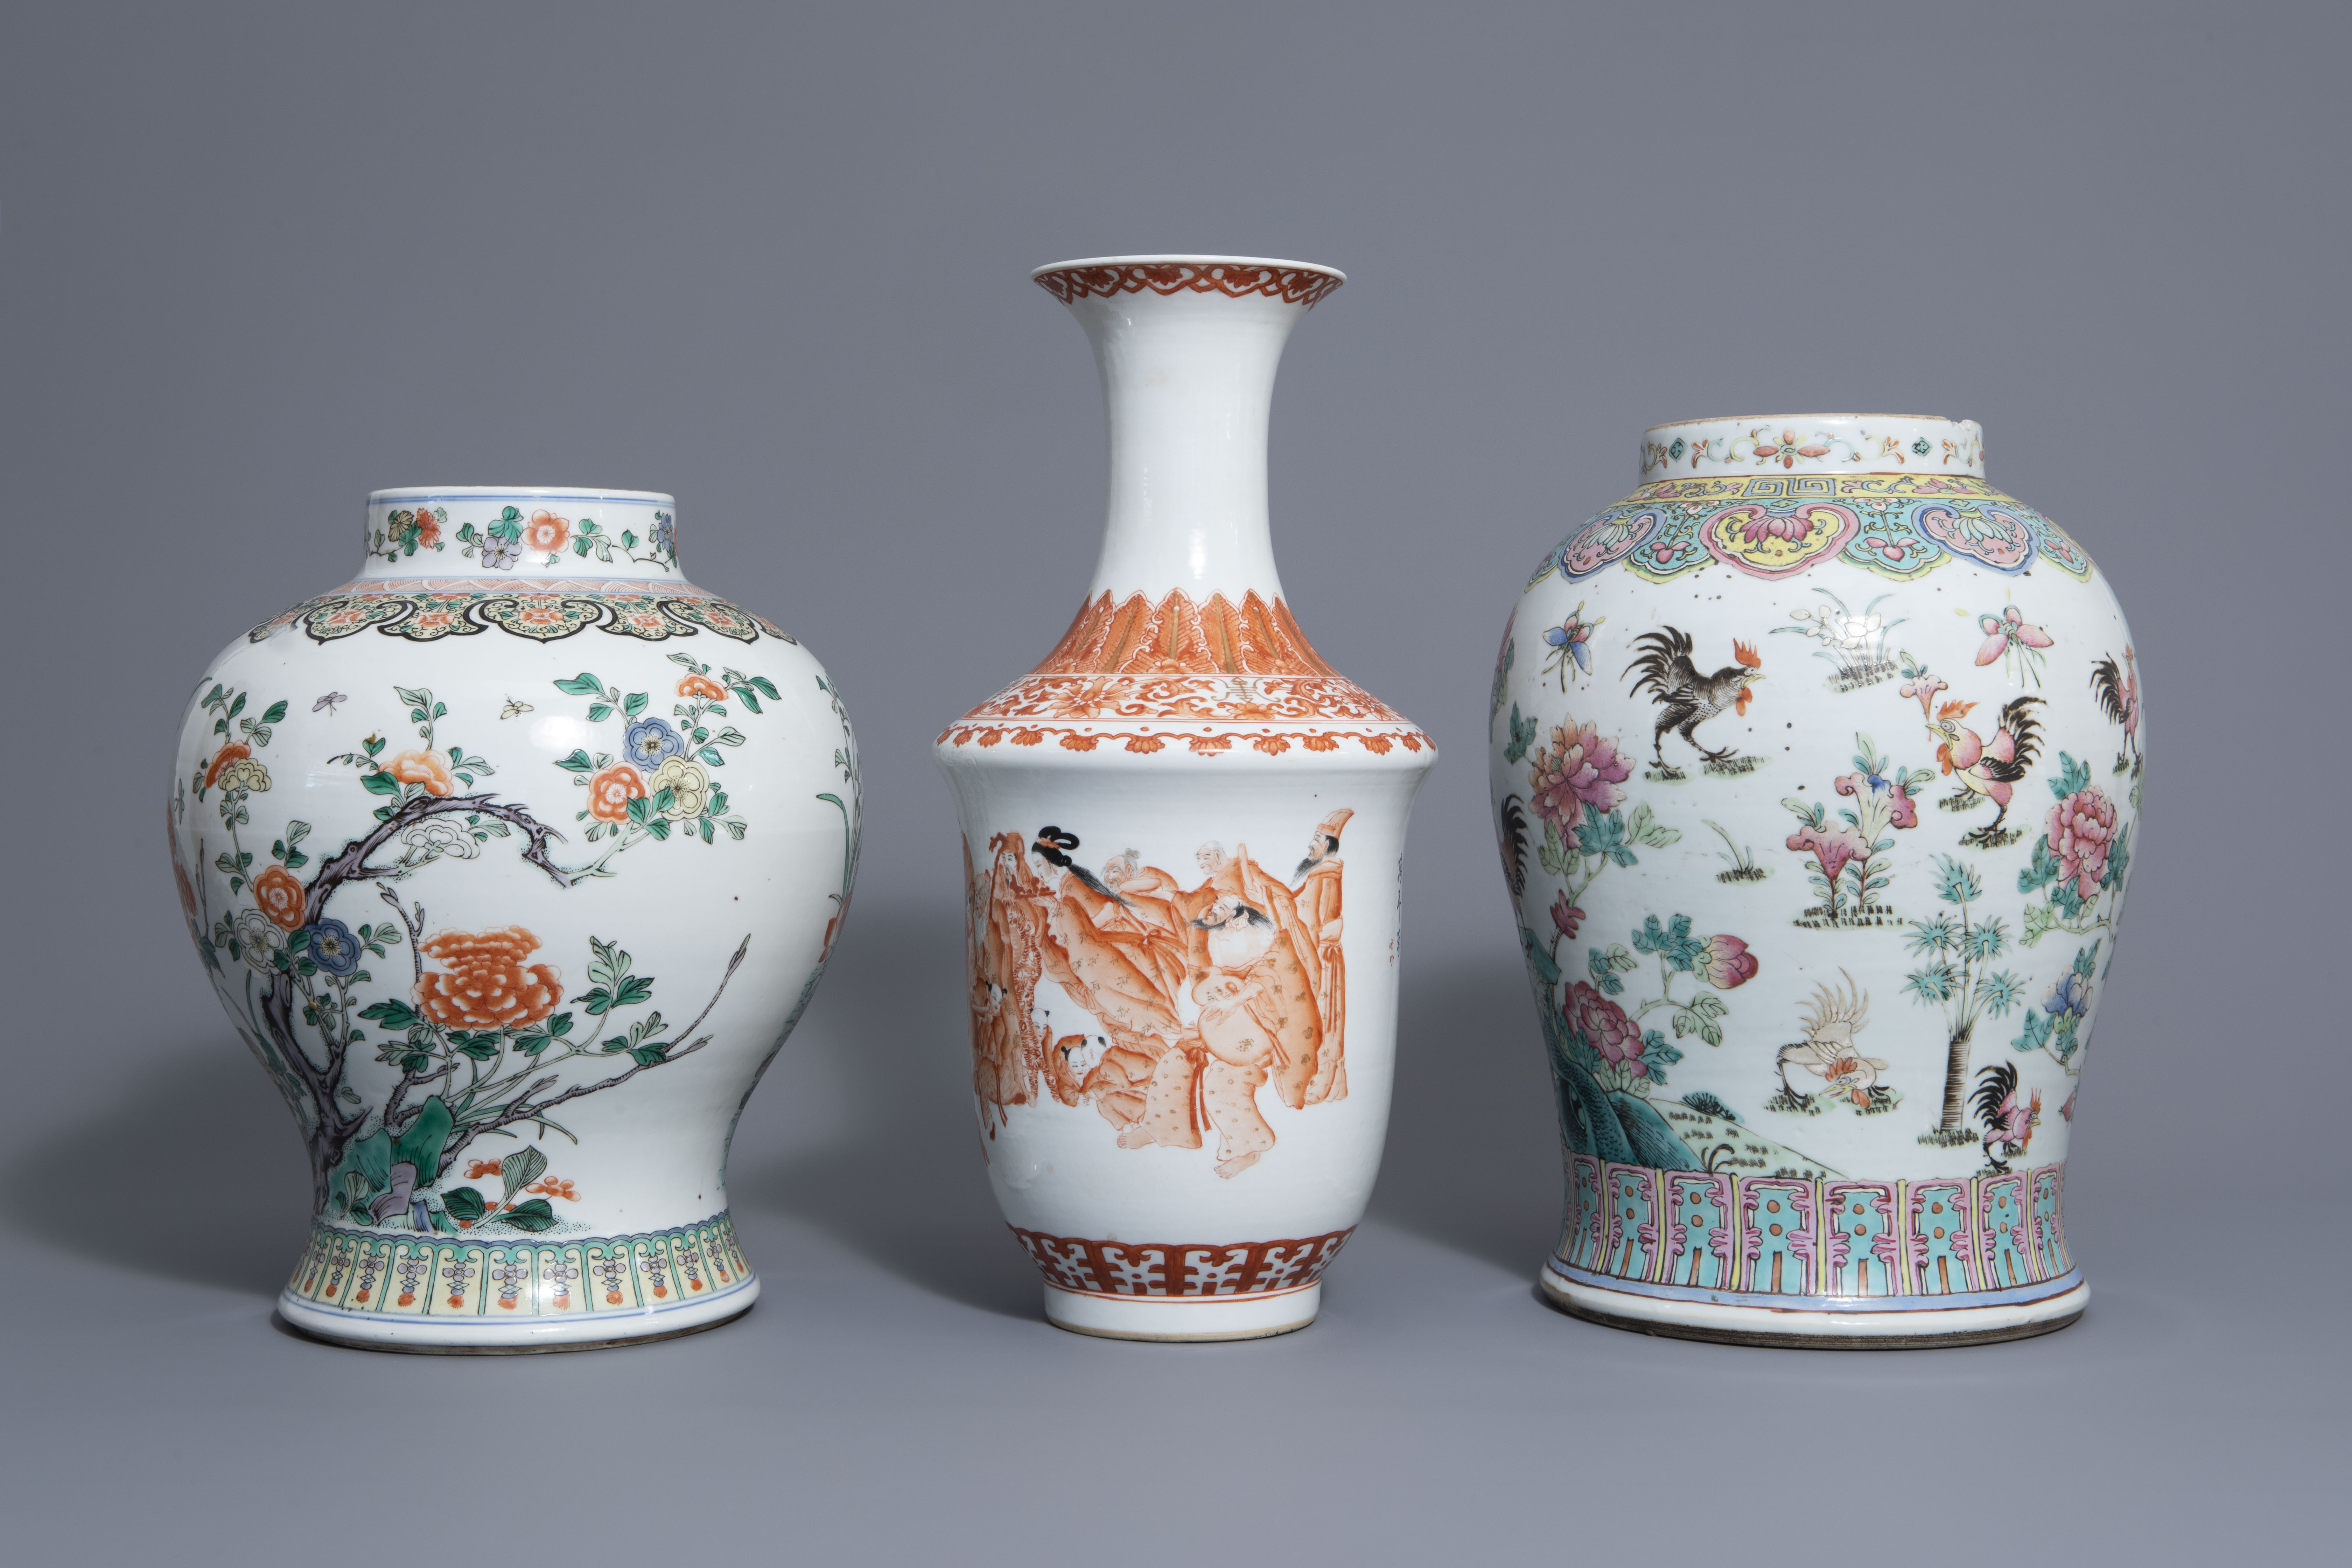 Three Chinese famille rose, verte and iron red vases with different designs, 19th/20th C. - Image 5 of 7